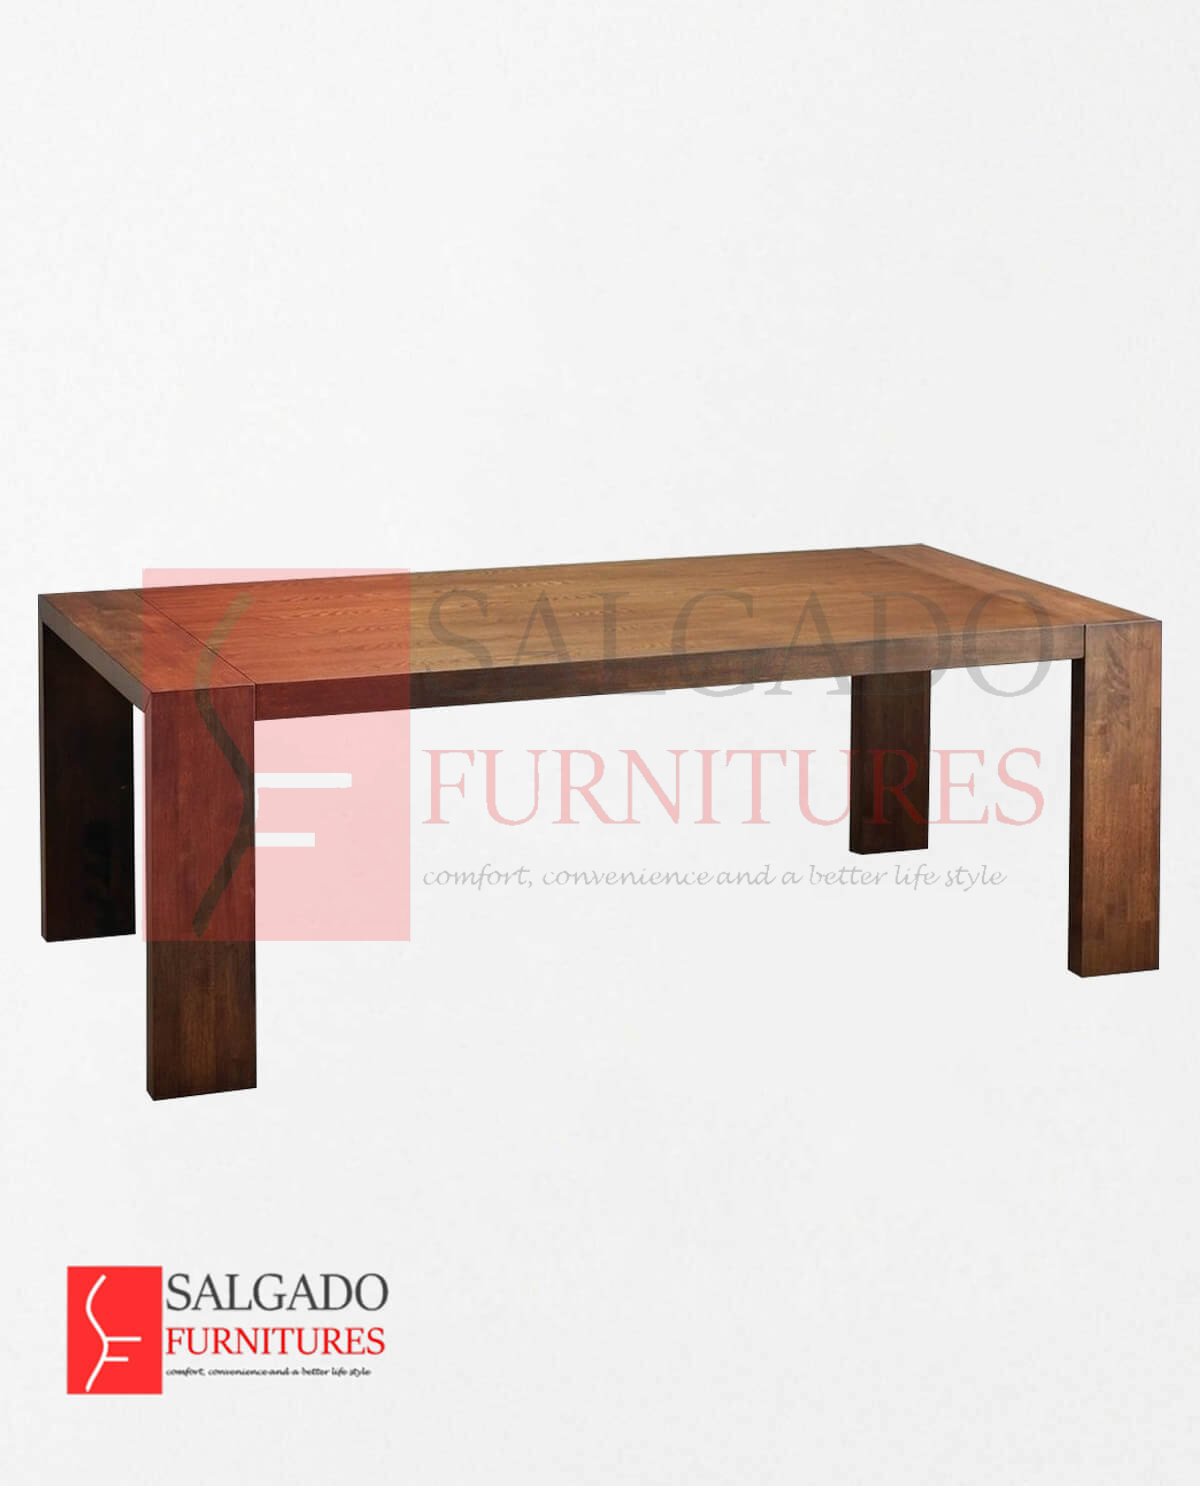 Dining Tables | Salgado Furniture Design Studio in Sri Lanka